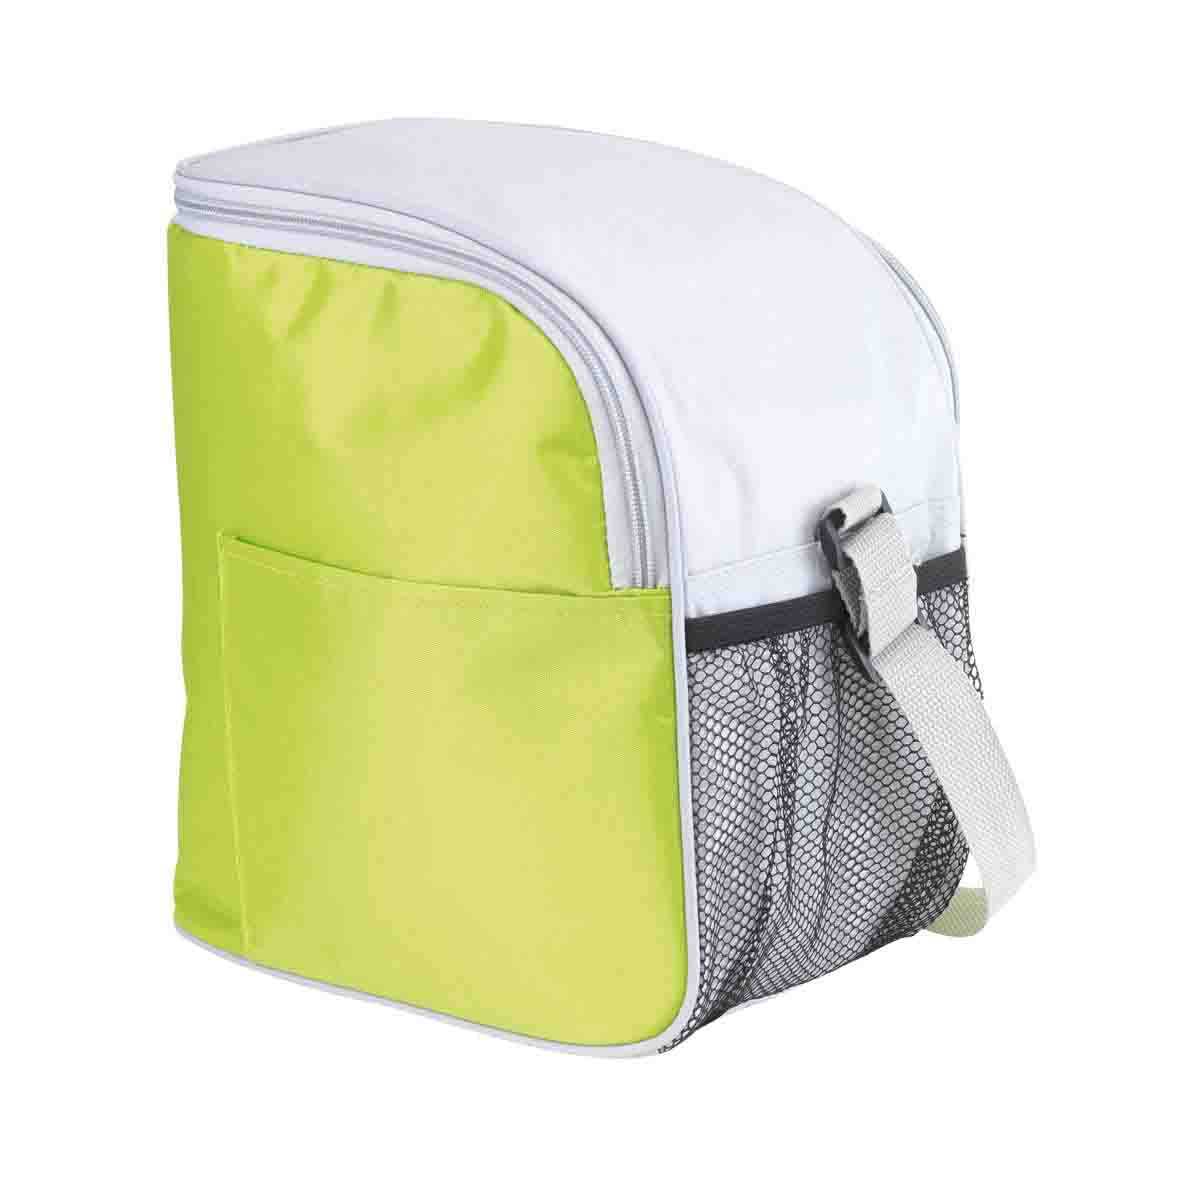 Cooler bag 'Glacial' - Light Green ins-0801145